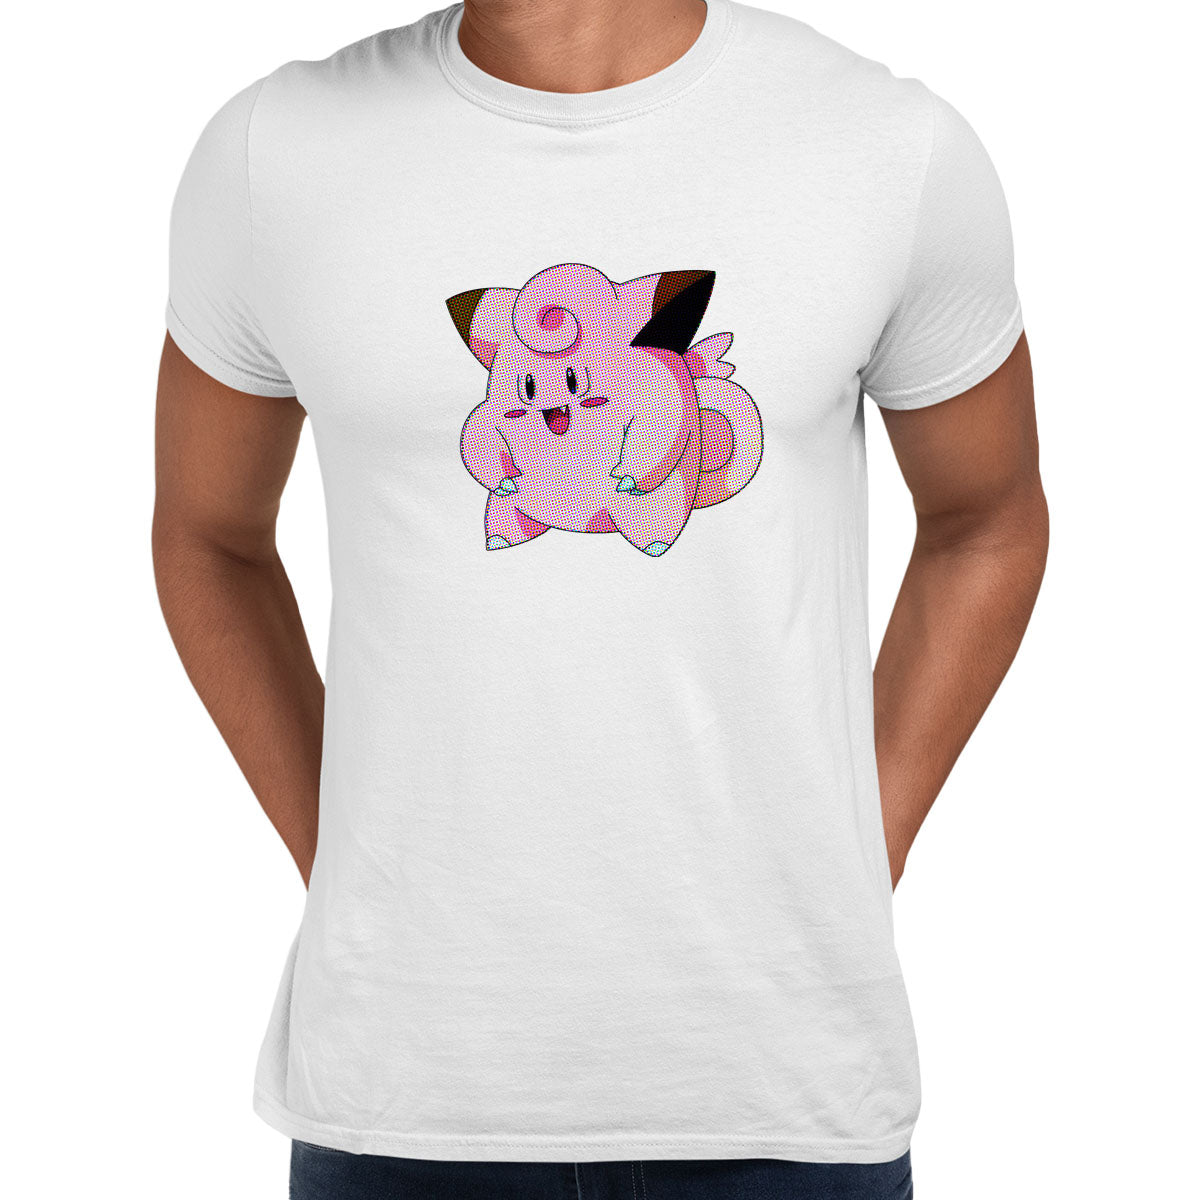 Clefairy Pokemon Go Black White Grey Unisex T-Shirt Brand New White